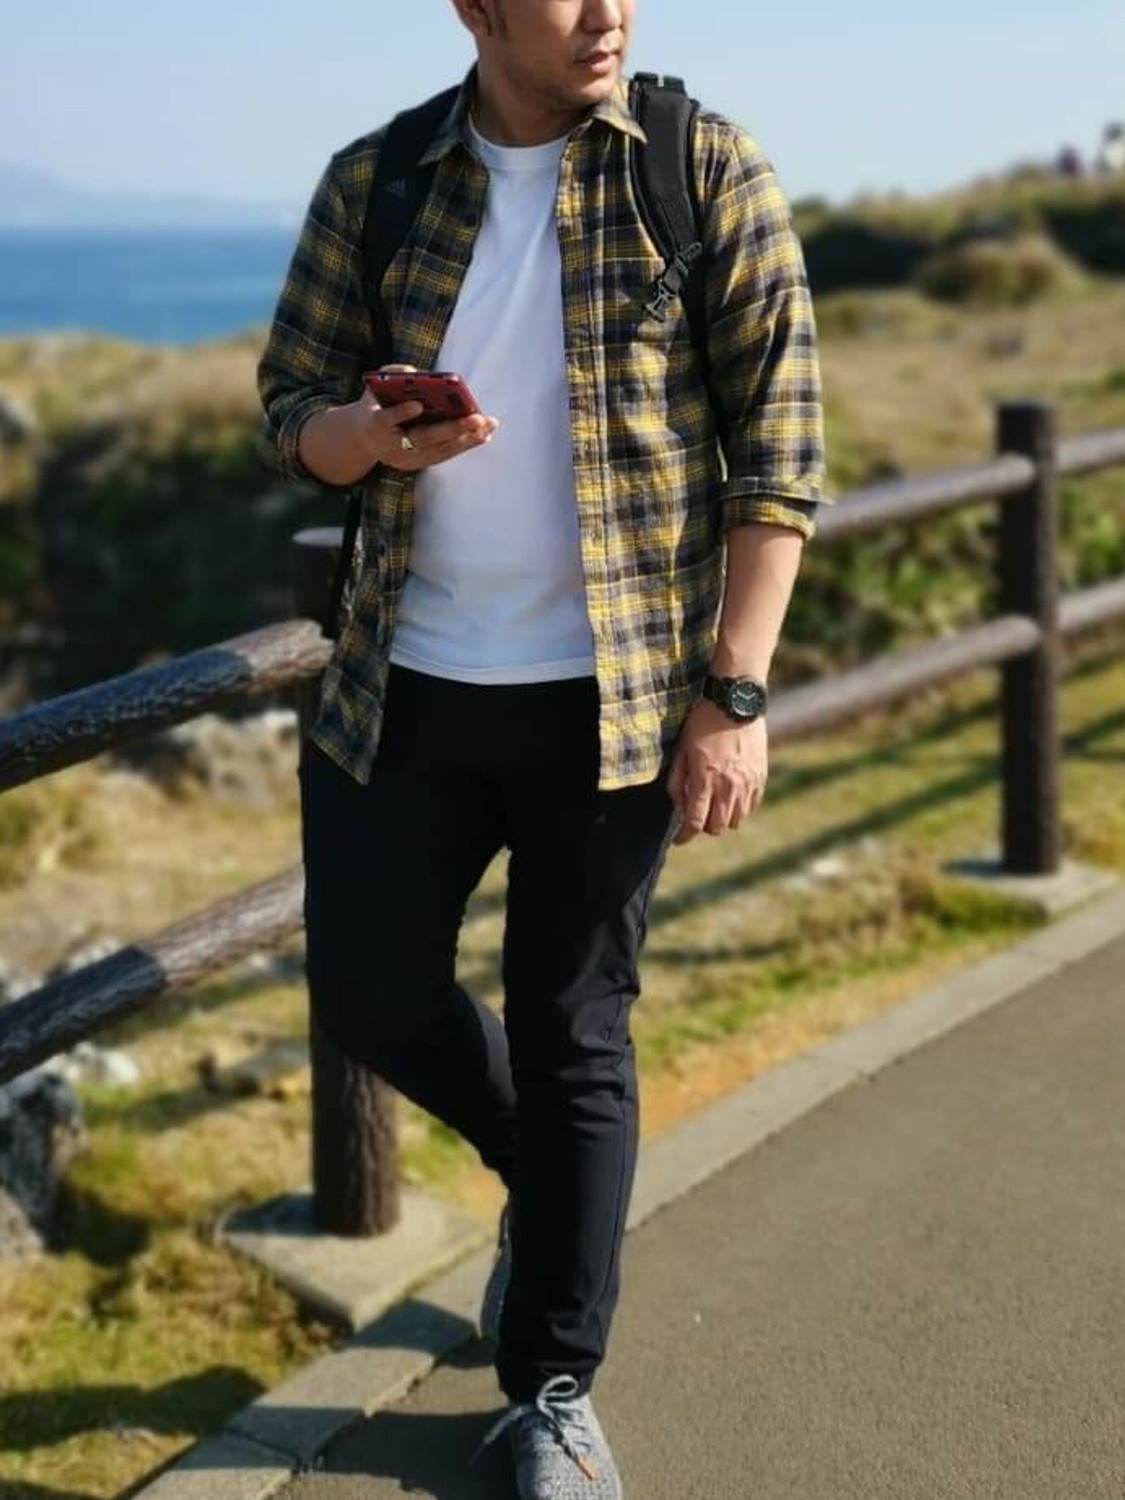 Men's outfit idea for 2021 with white crew neck t-shirt, black jeans, neutral trainers. Suitable for spring and autumn.